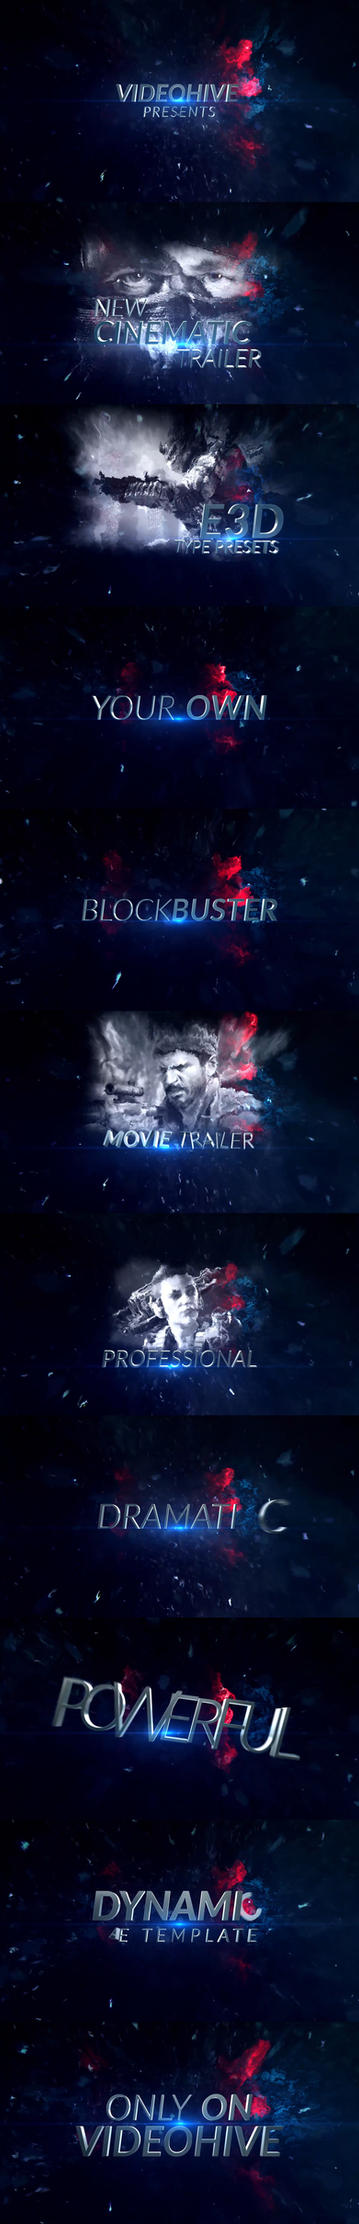 Dtp V1 Trailer Final 10035 by djrana